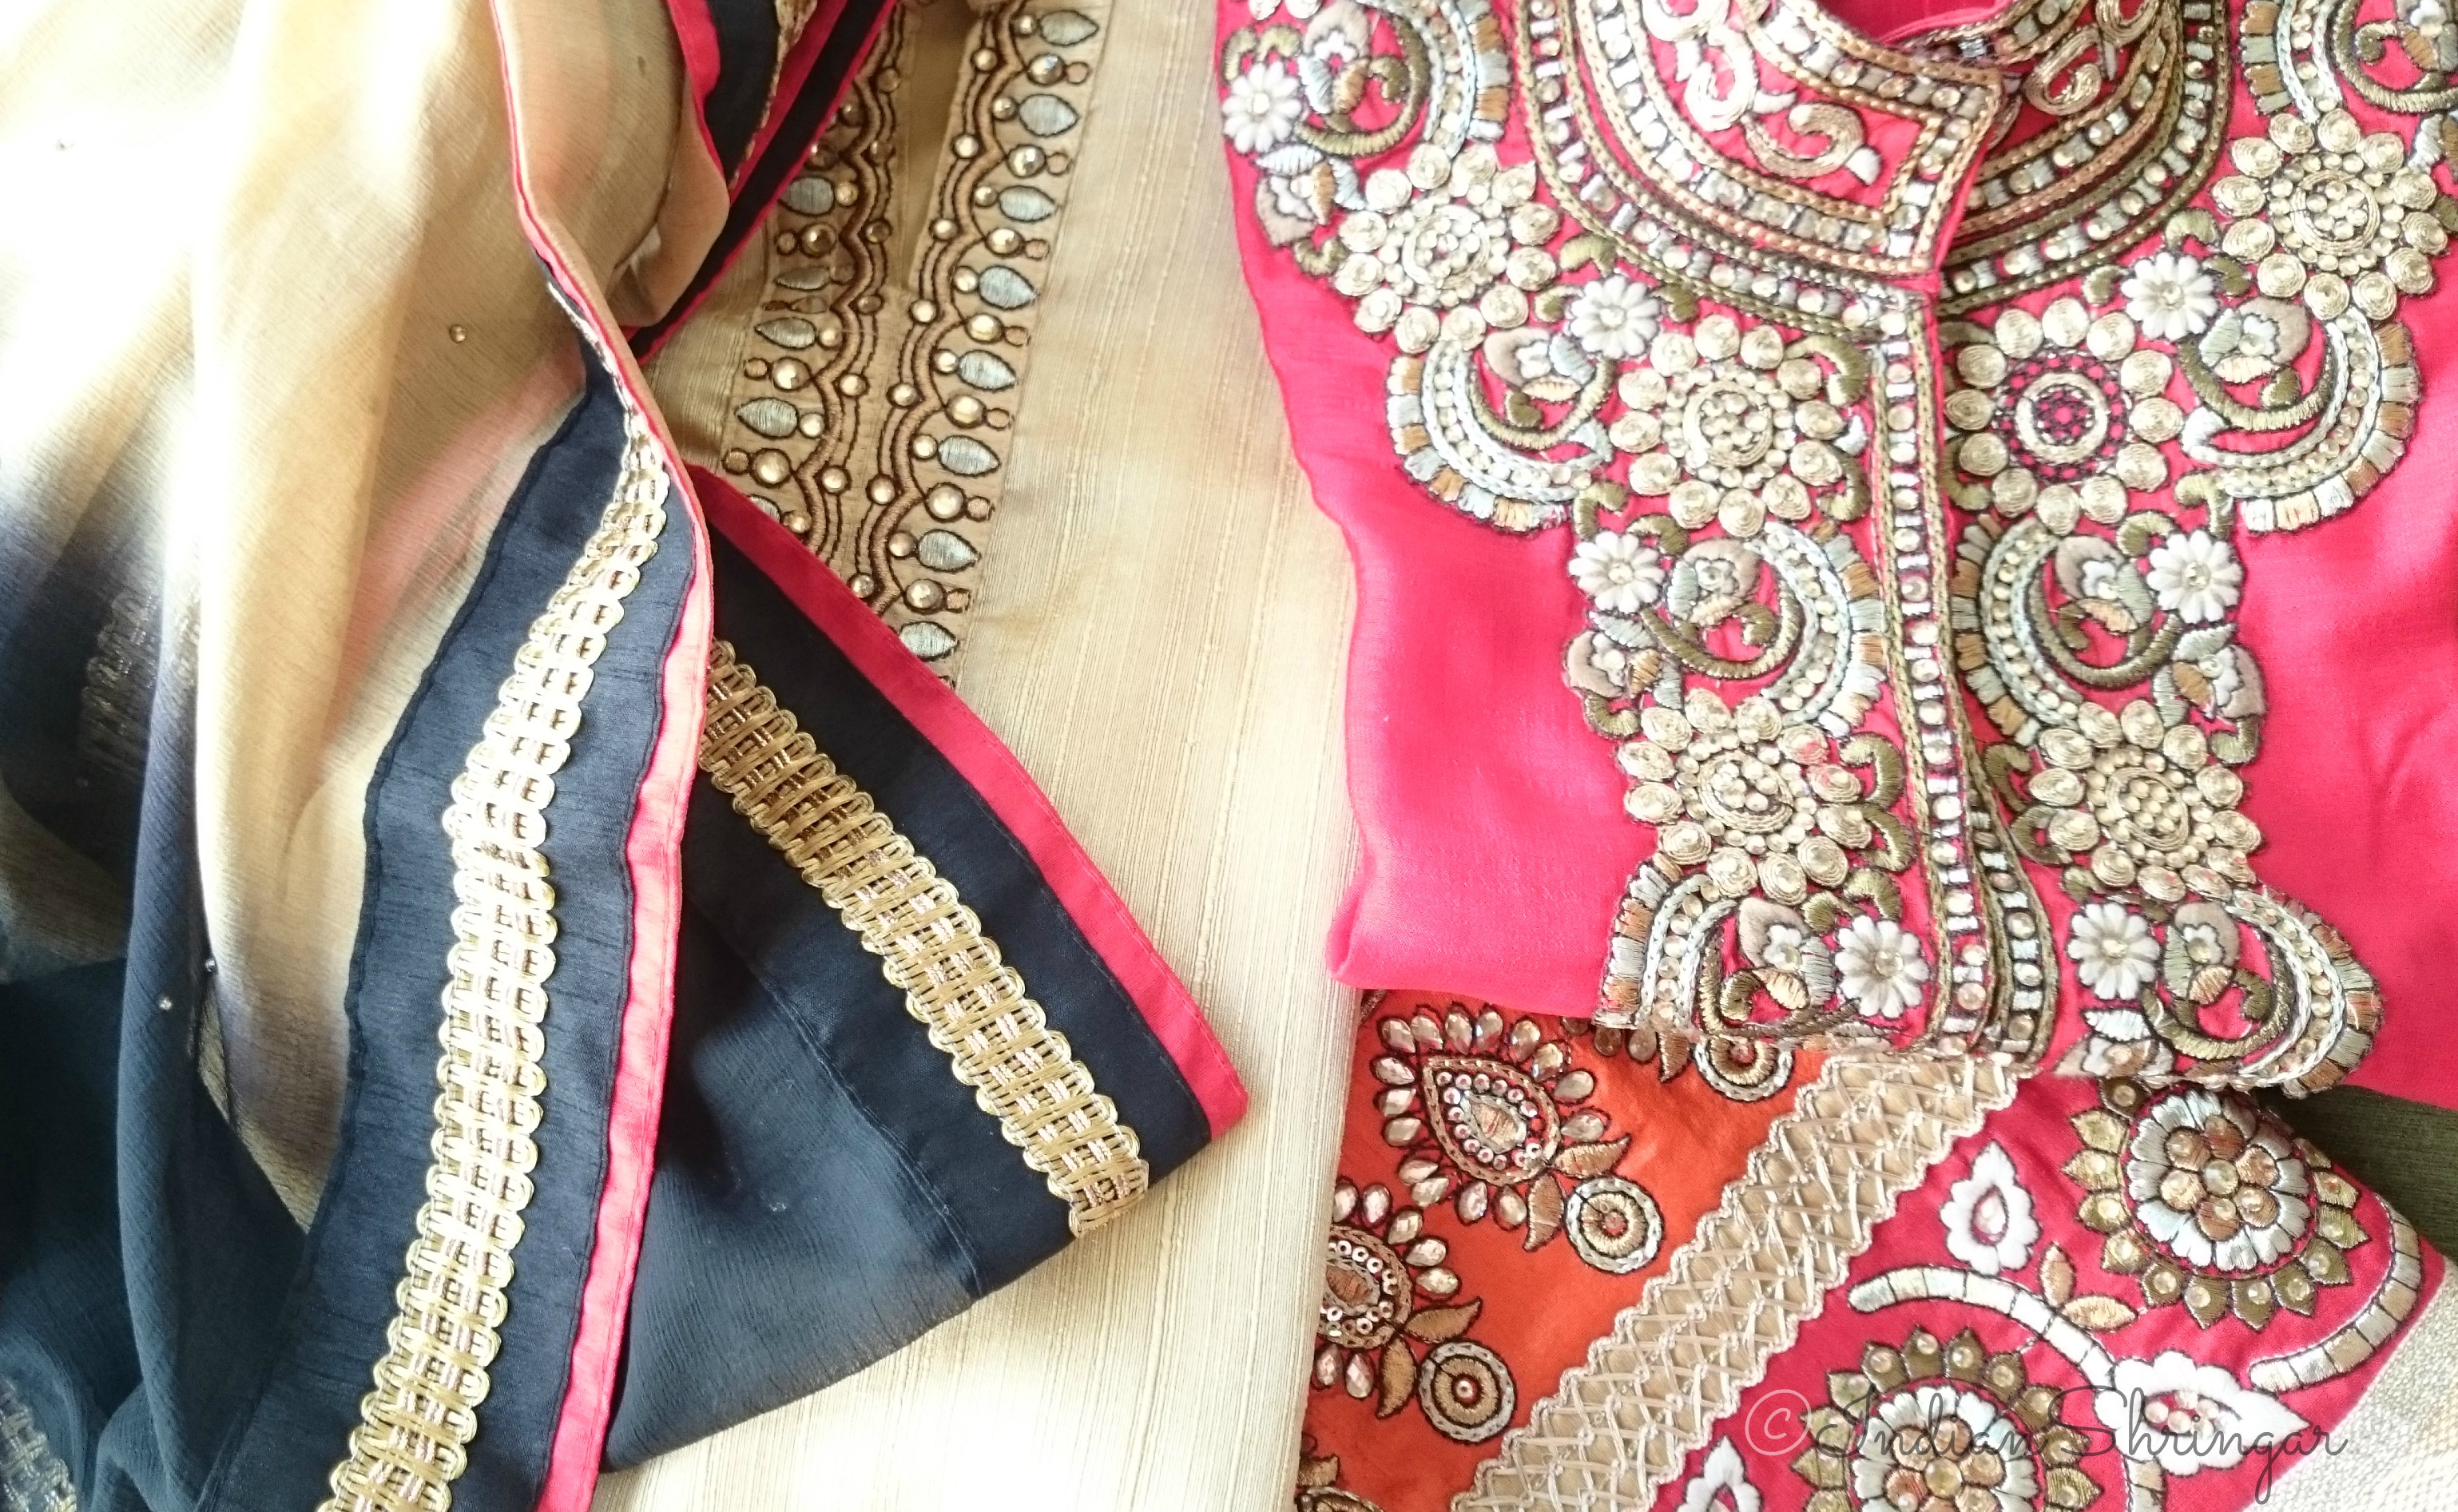 OOTD featuring Saree.com and website review